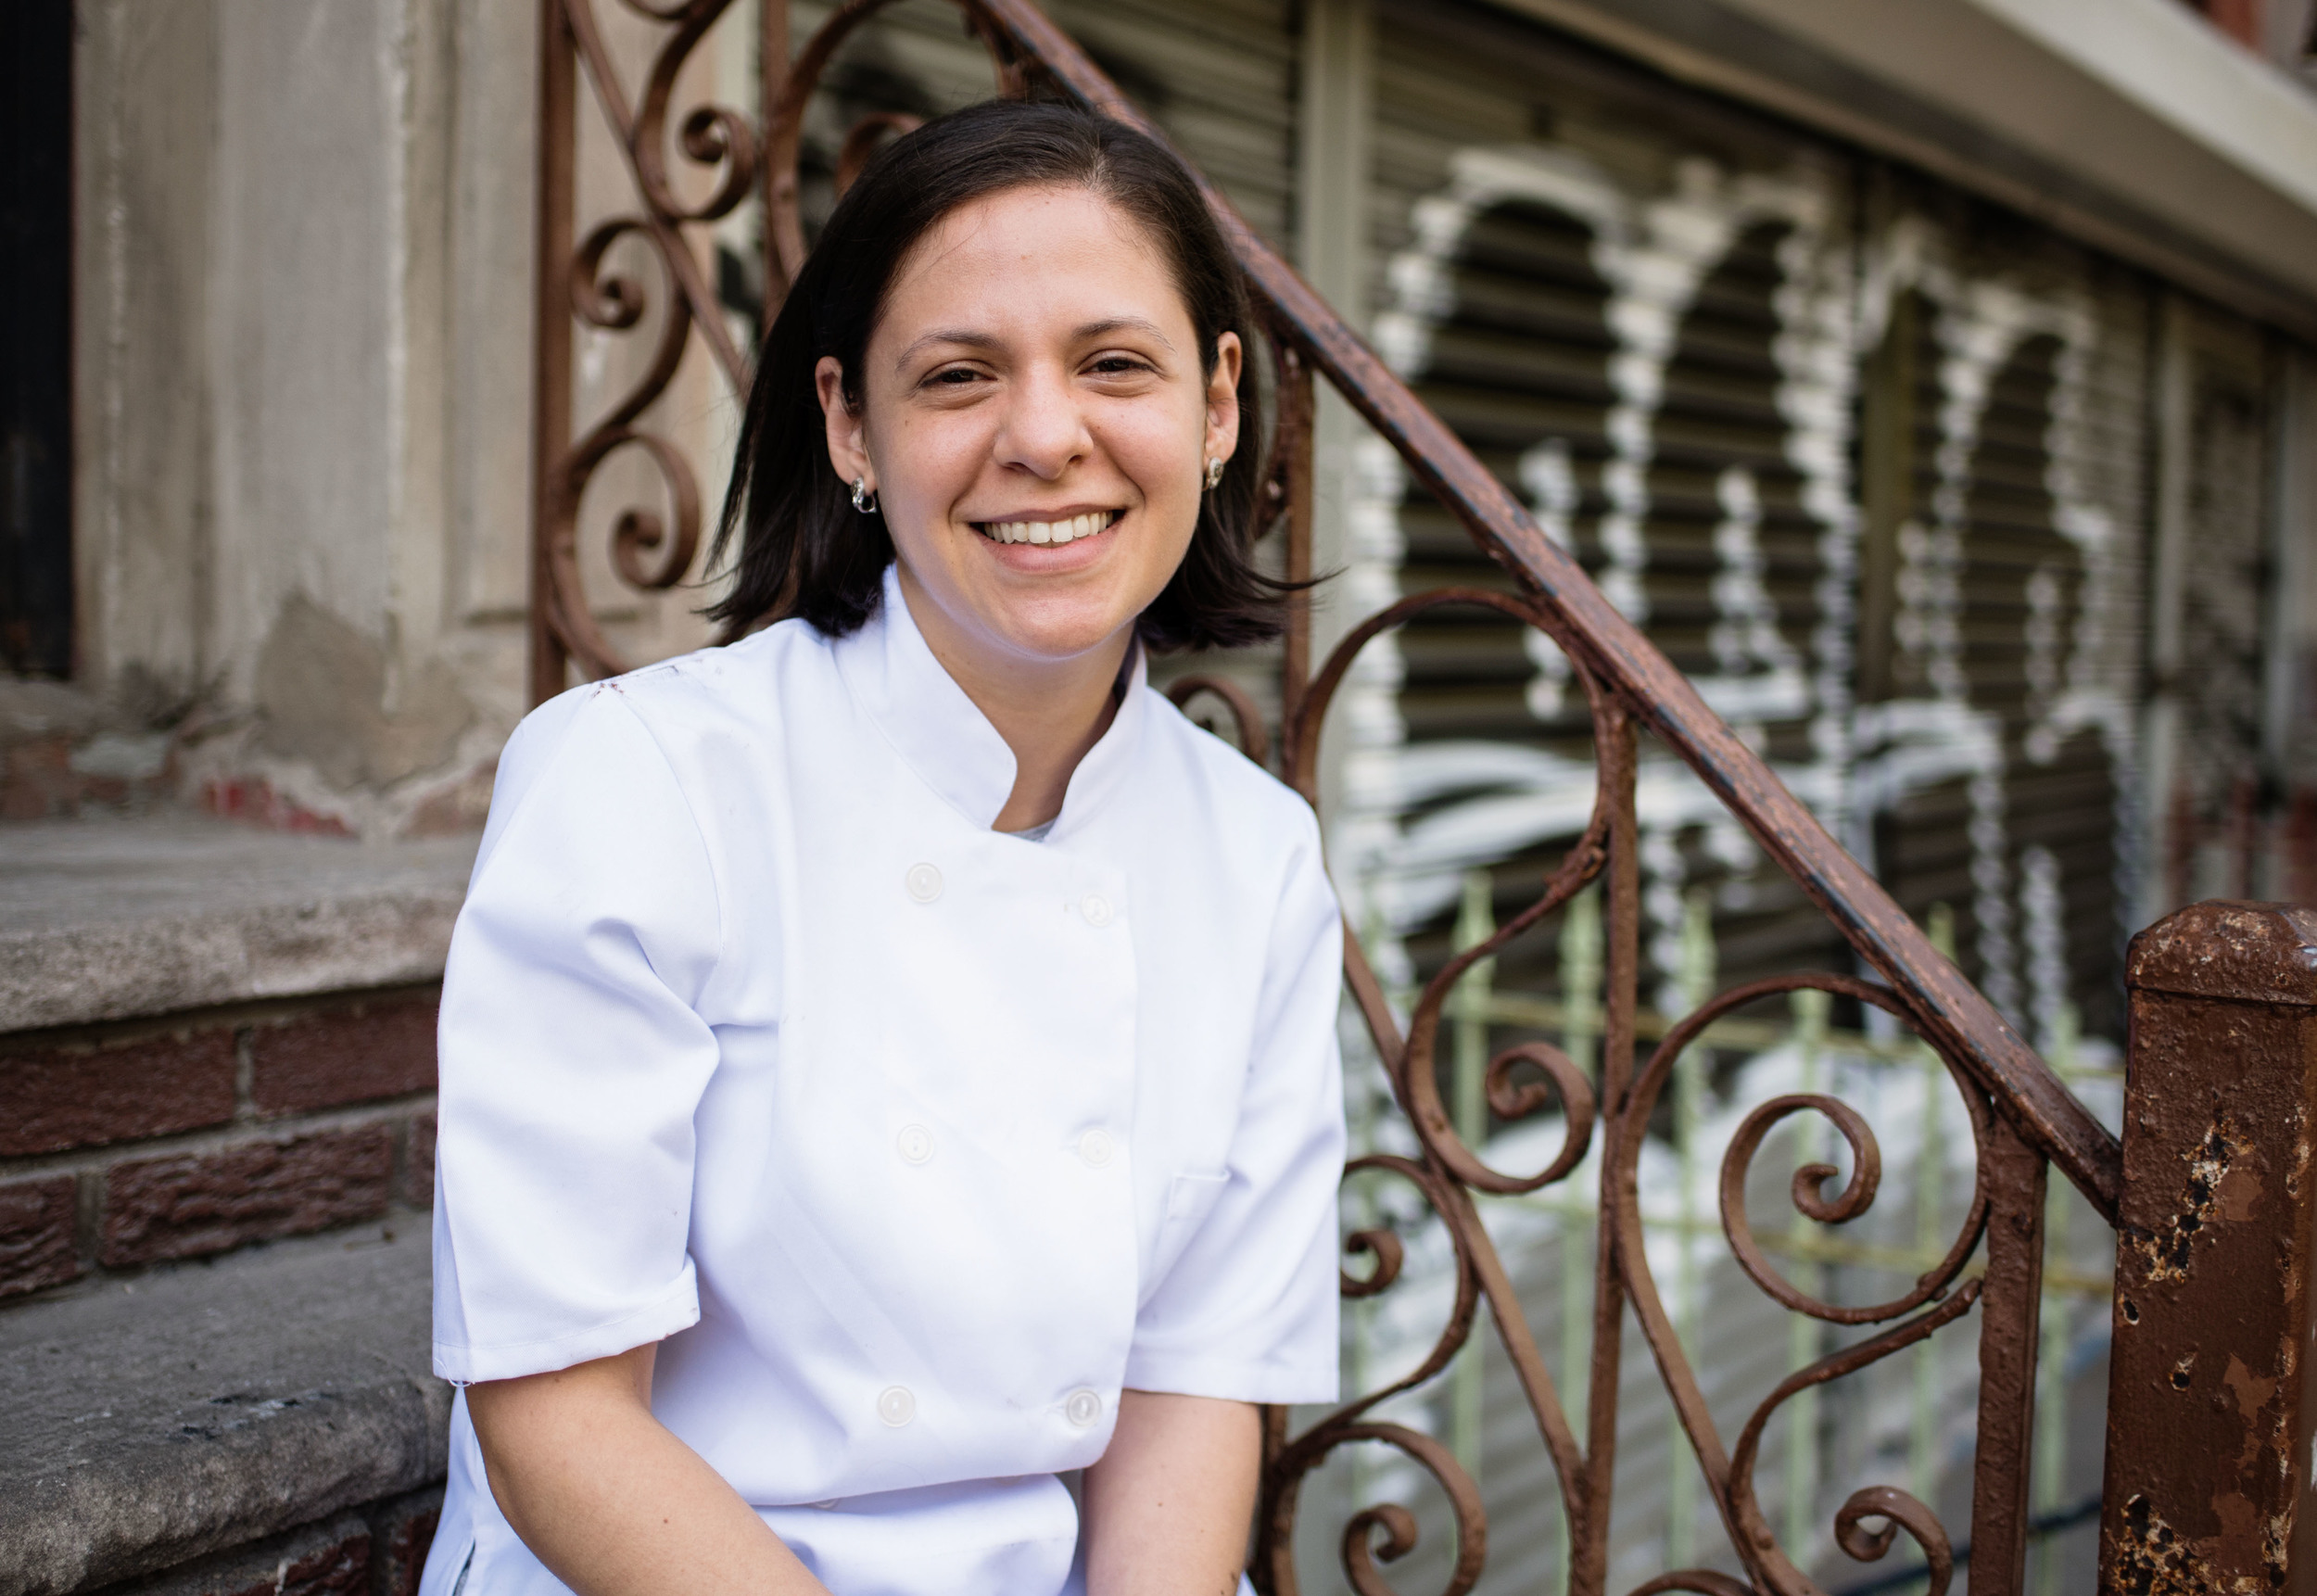 melanie moss   Pastry Chef and Owner, Mini Melanie, Lower East Side